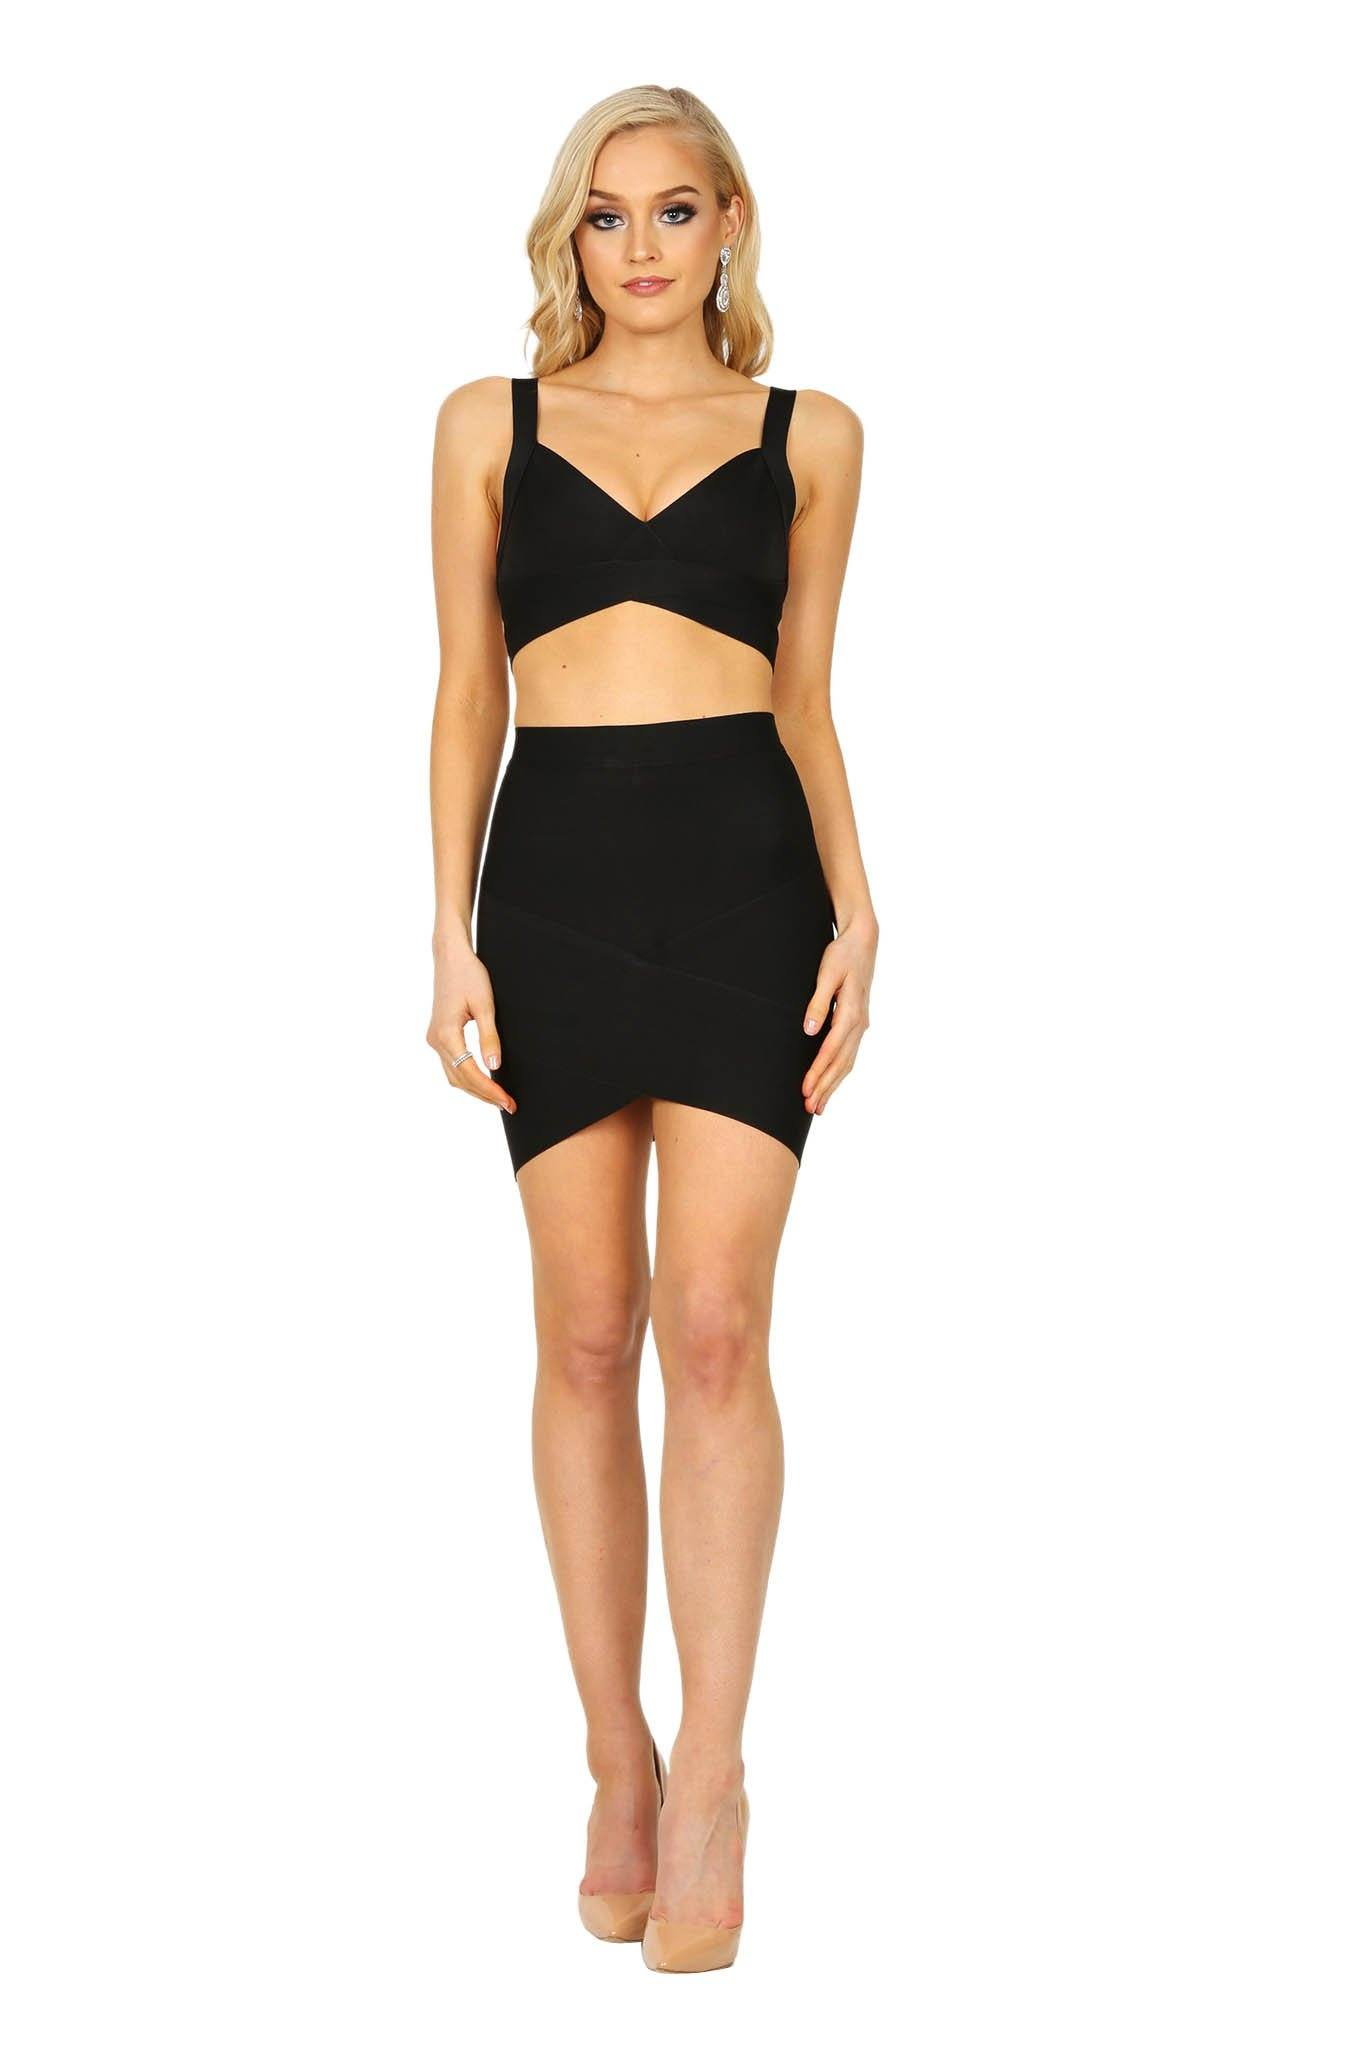 Black matching fitted bandage set including bralette style top and arched hem mini skirt